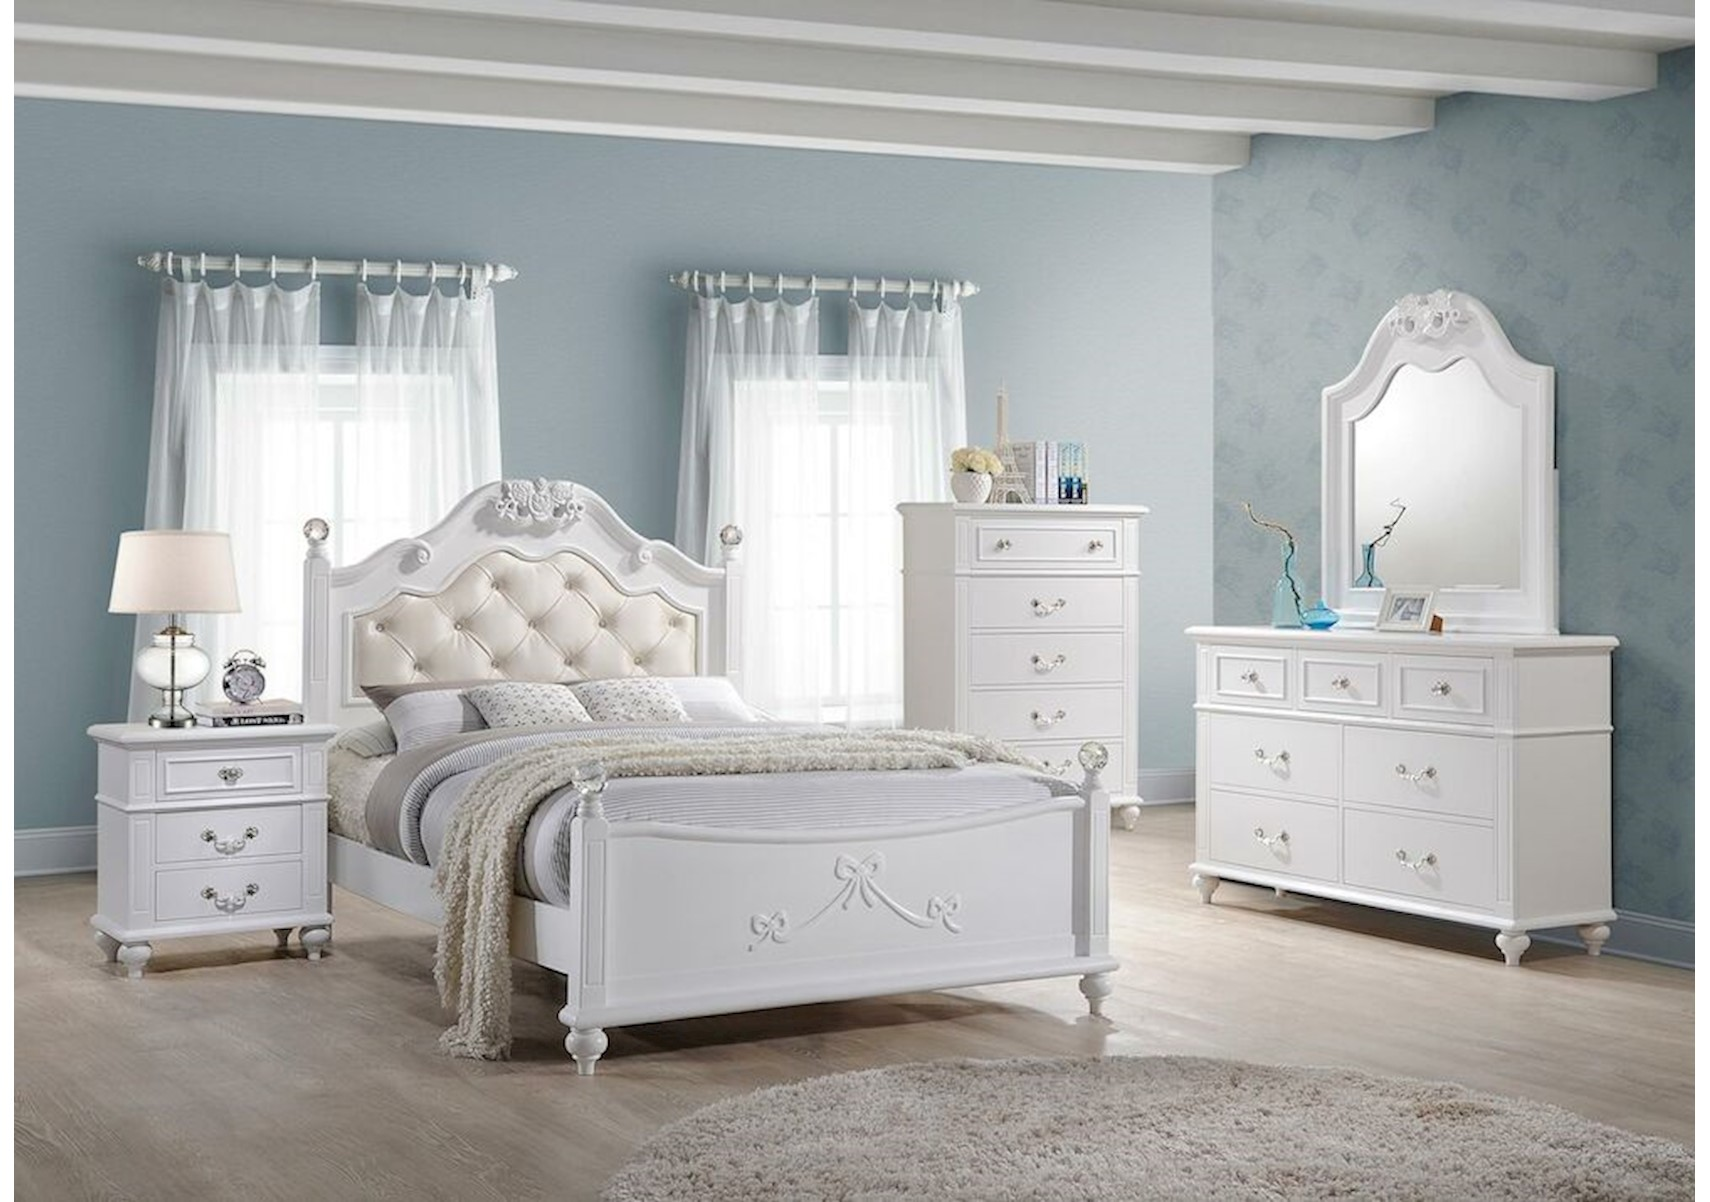 Alana Kids Twin Bedroom Set